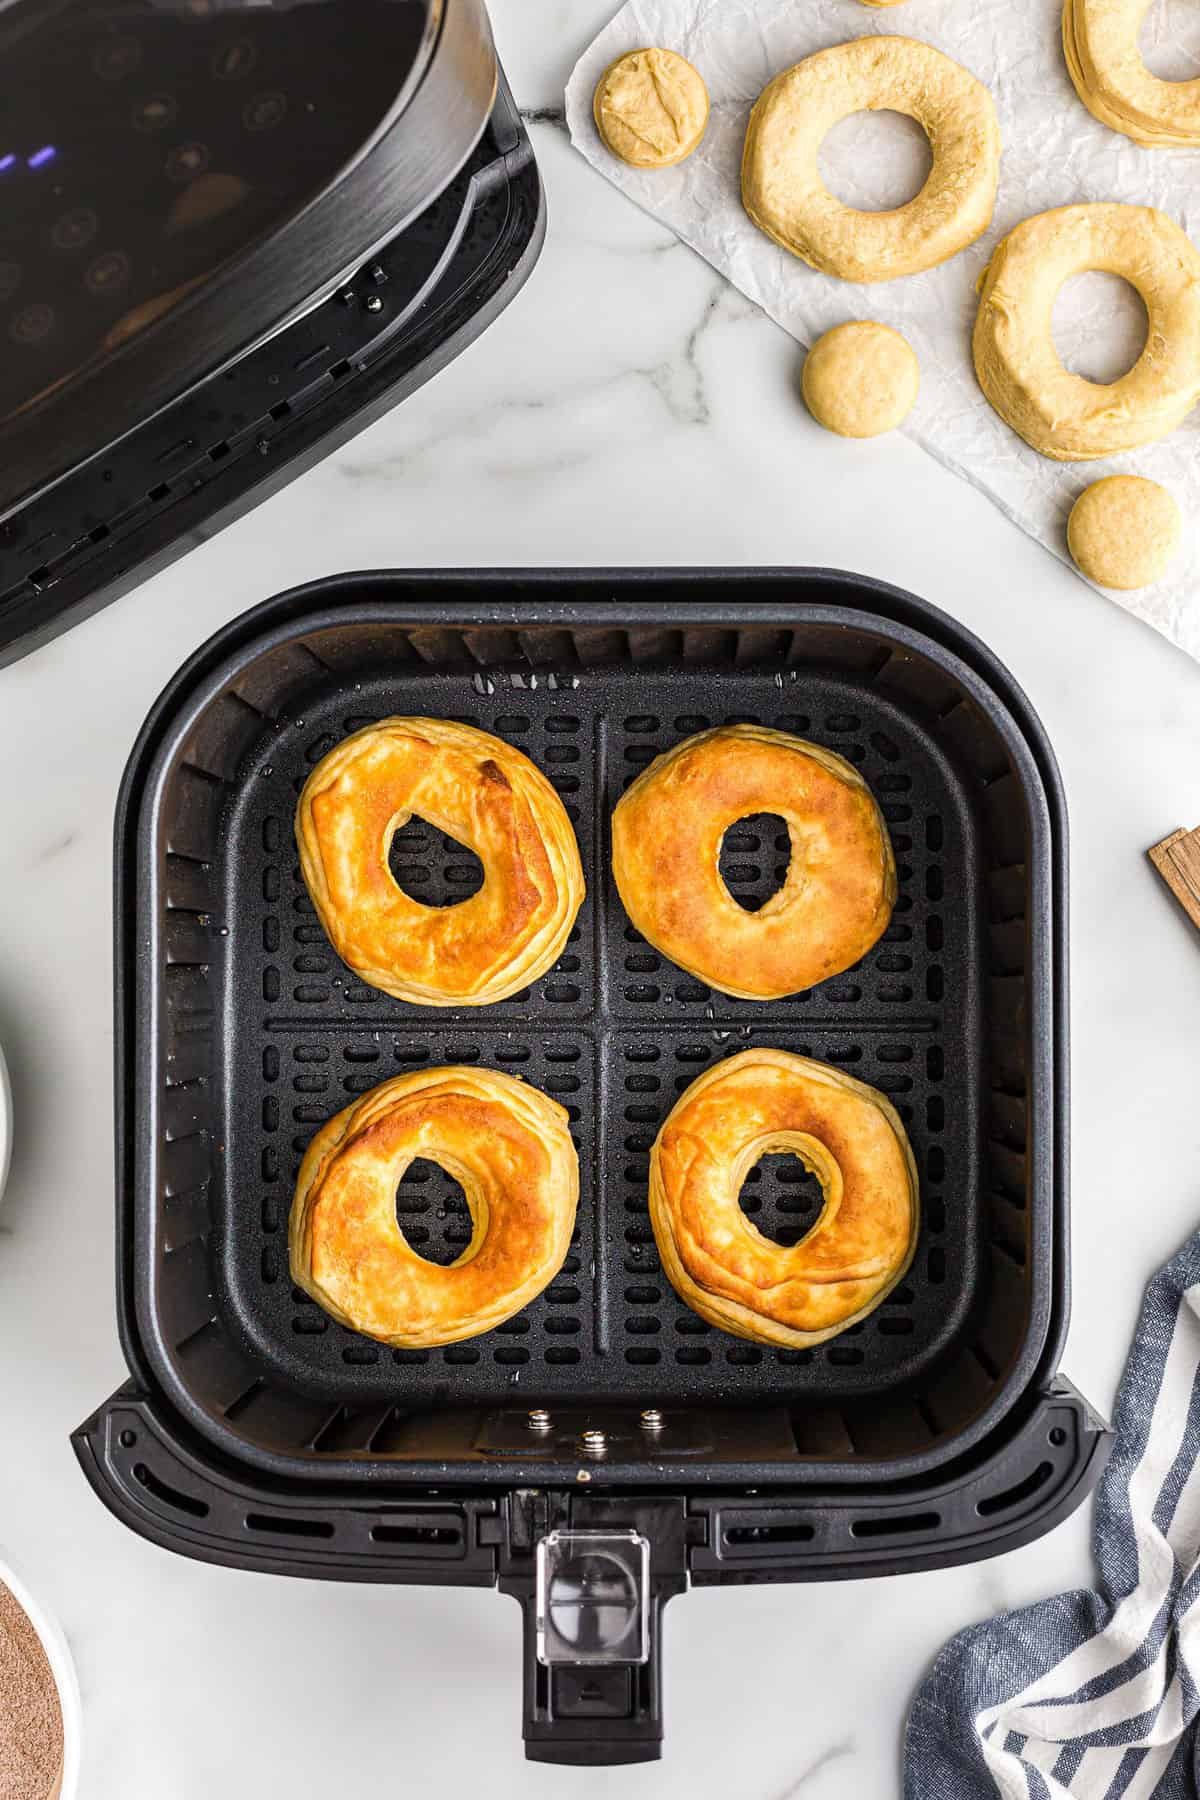 Fry donuts in the air for 3 minutes